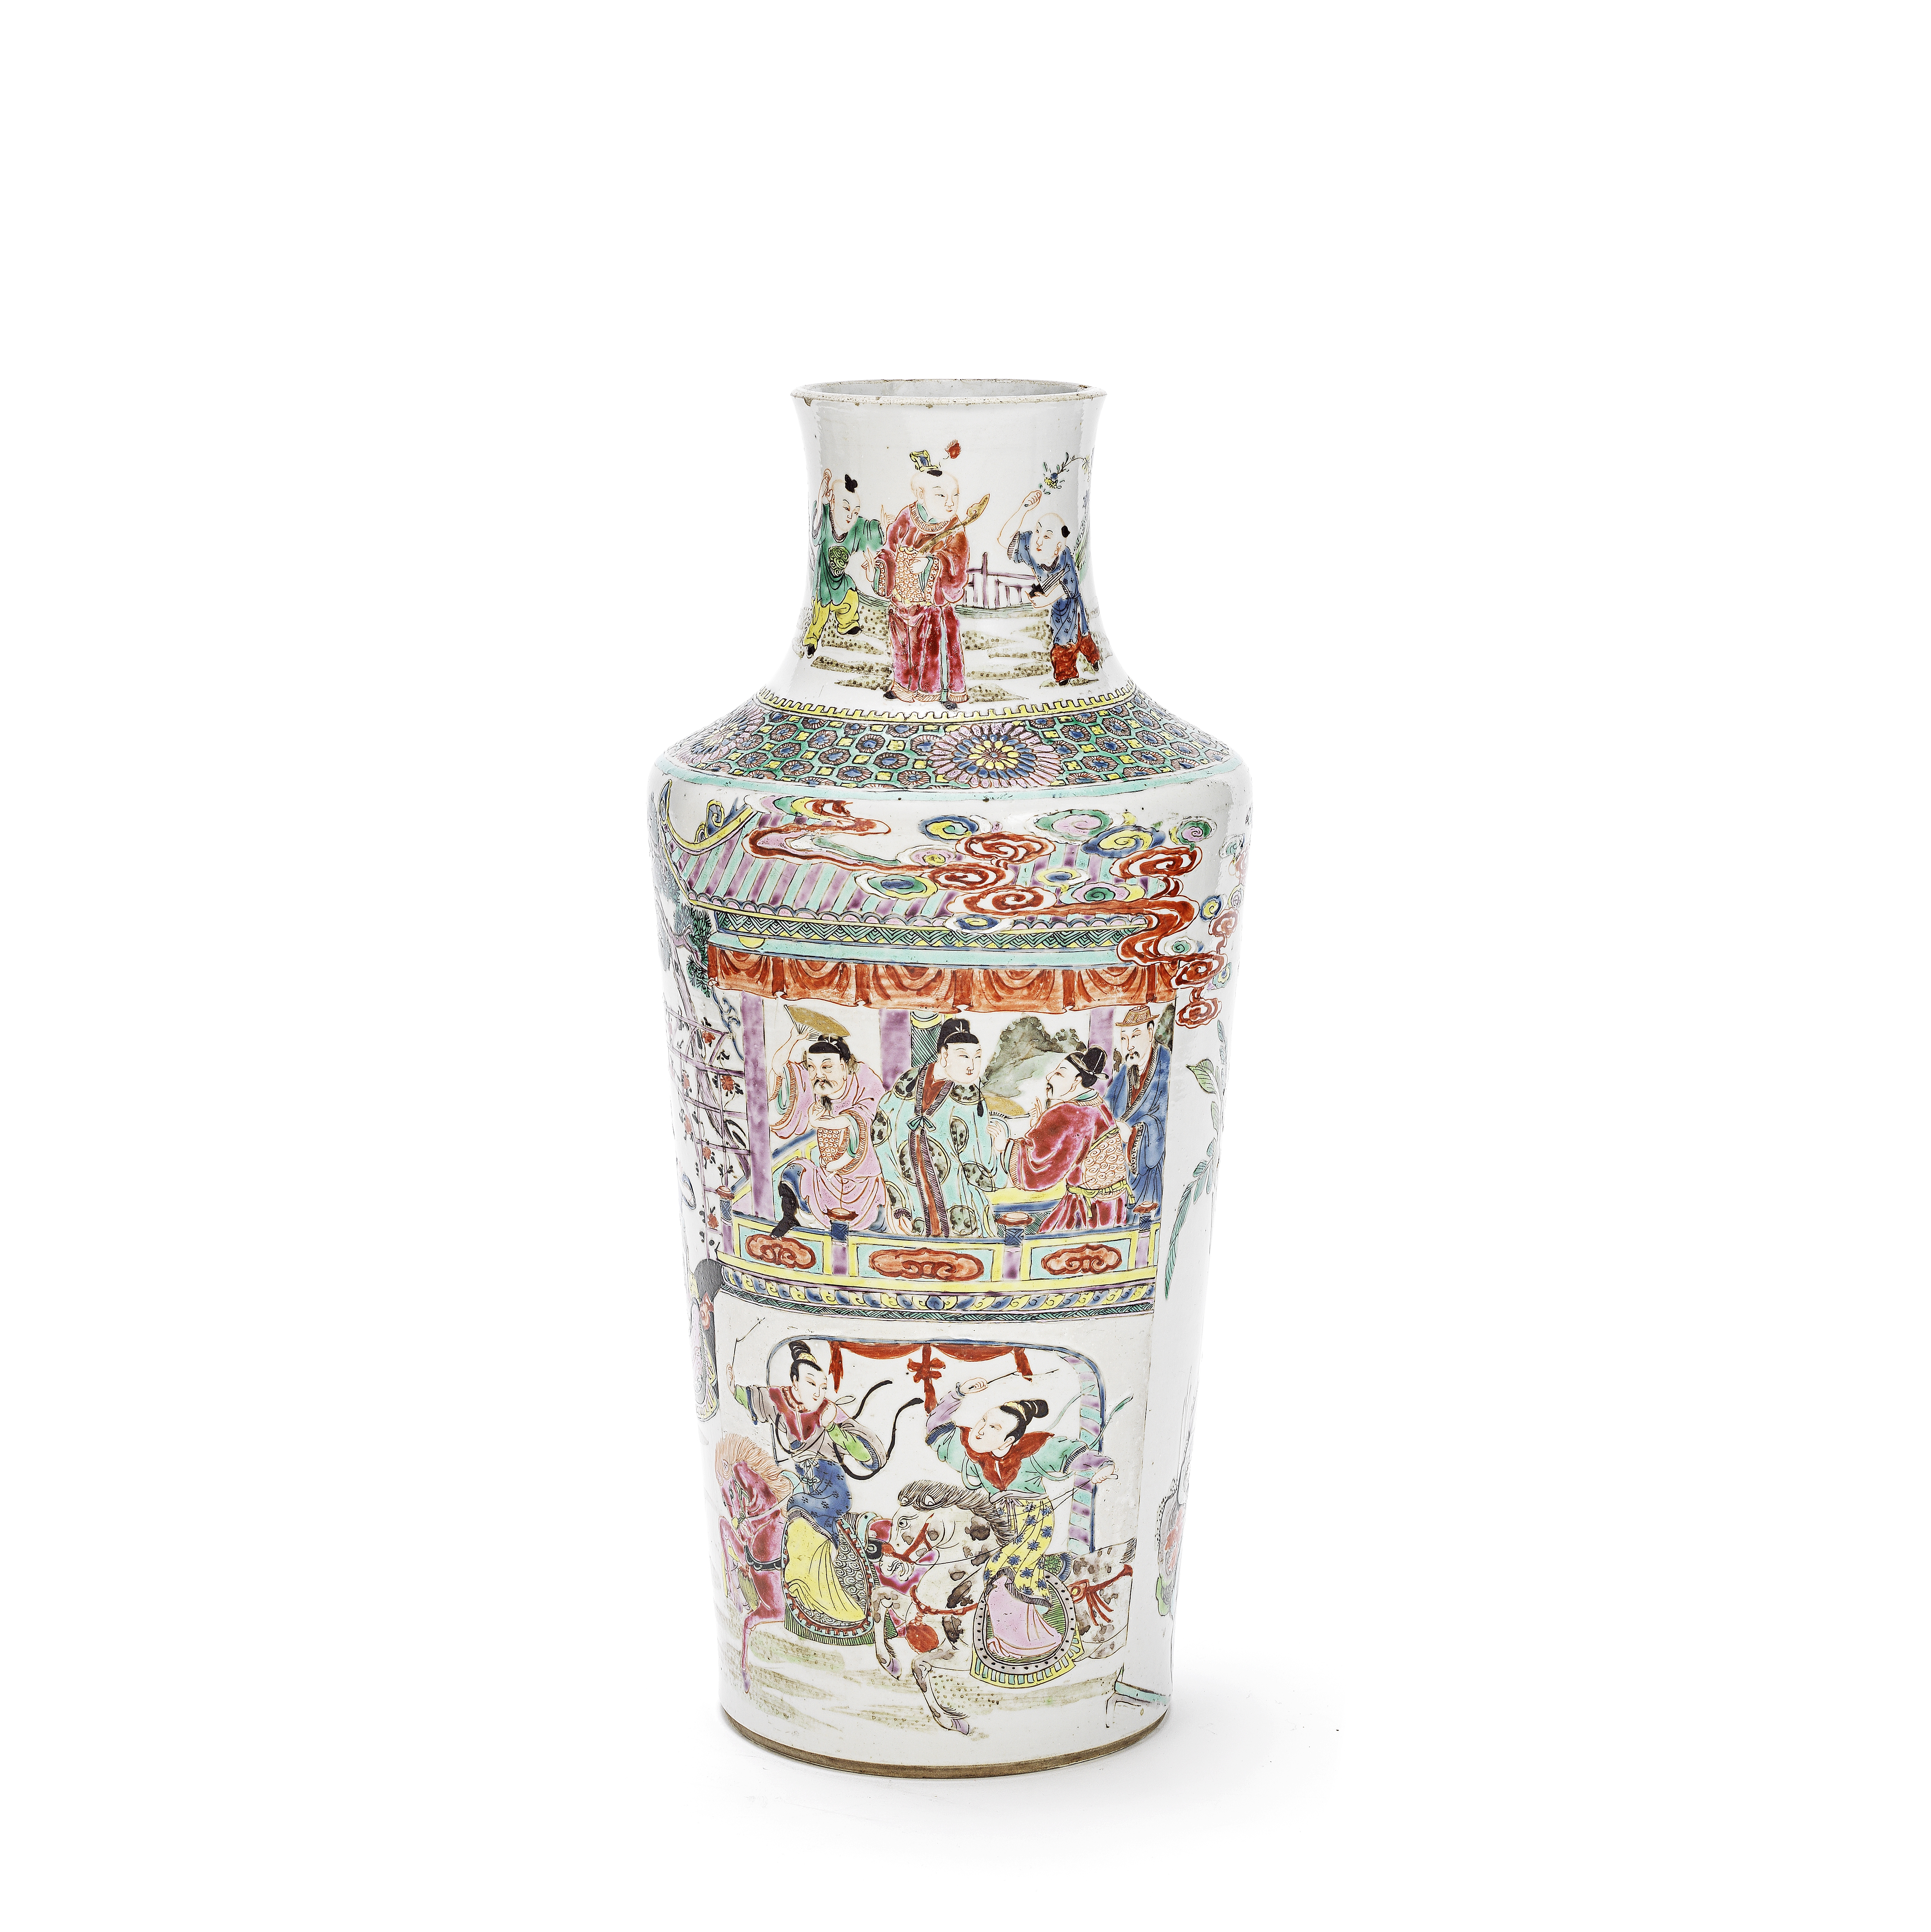 A FAMILLE ROSE 'GENERALS OF THE YANG FAMILY' VASE 19th century